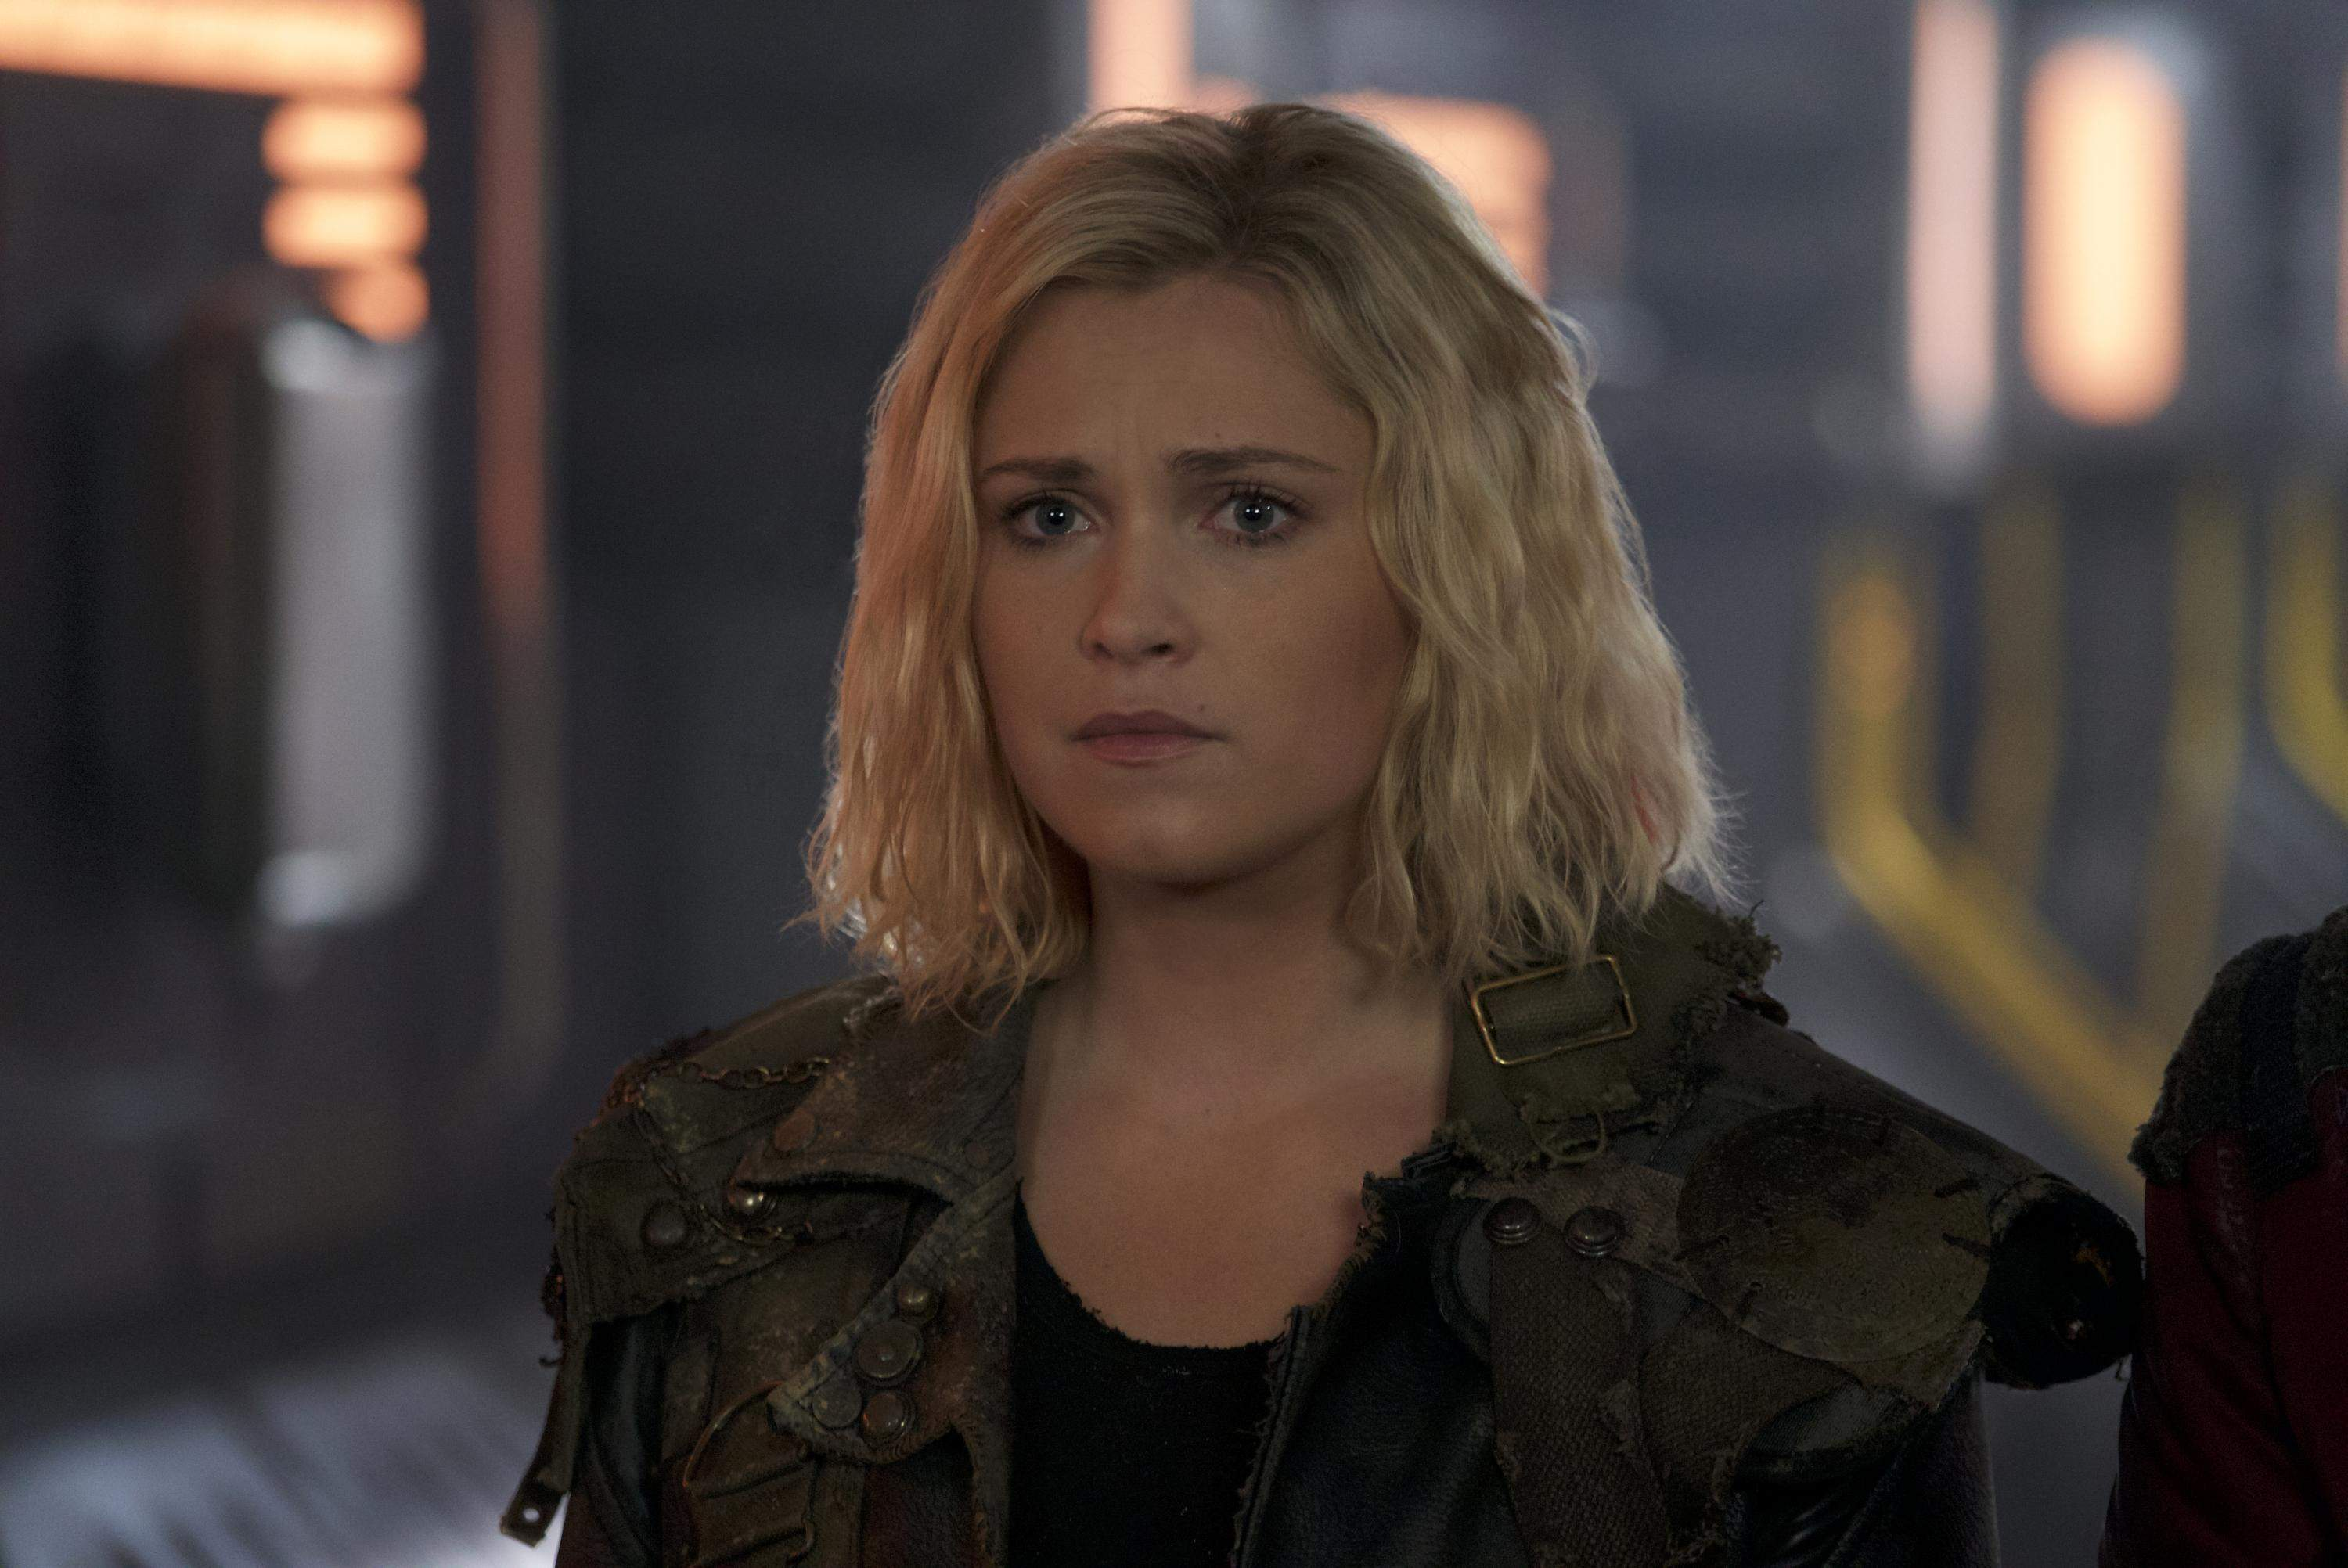 Index of The 100 Season 6 With Episode Titles, Release Dates